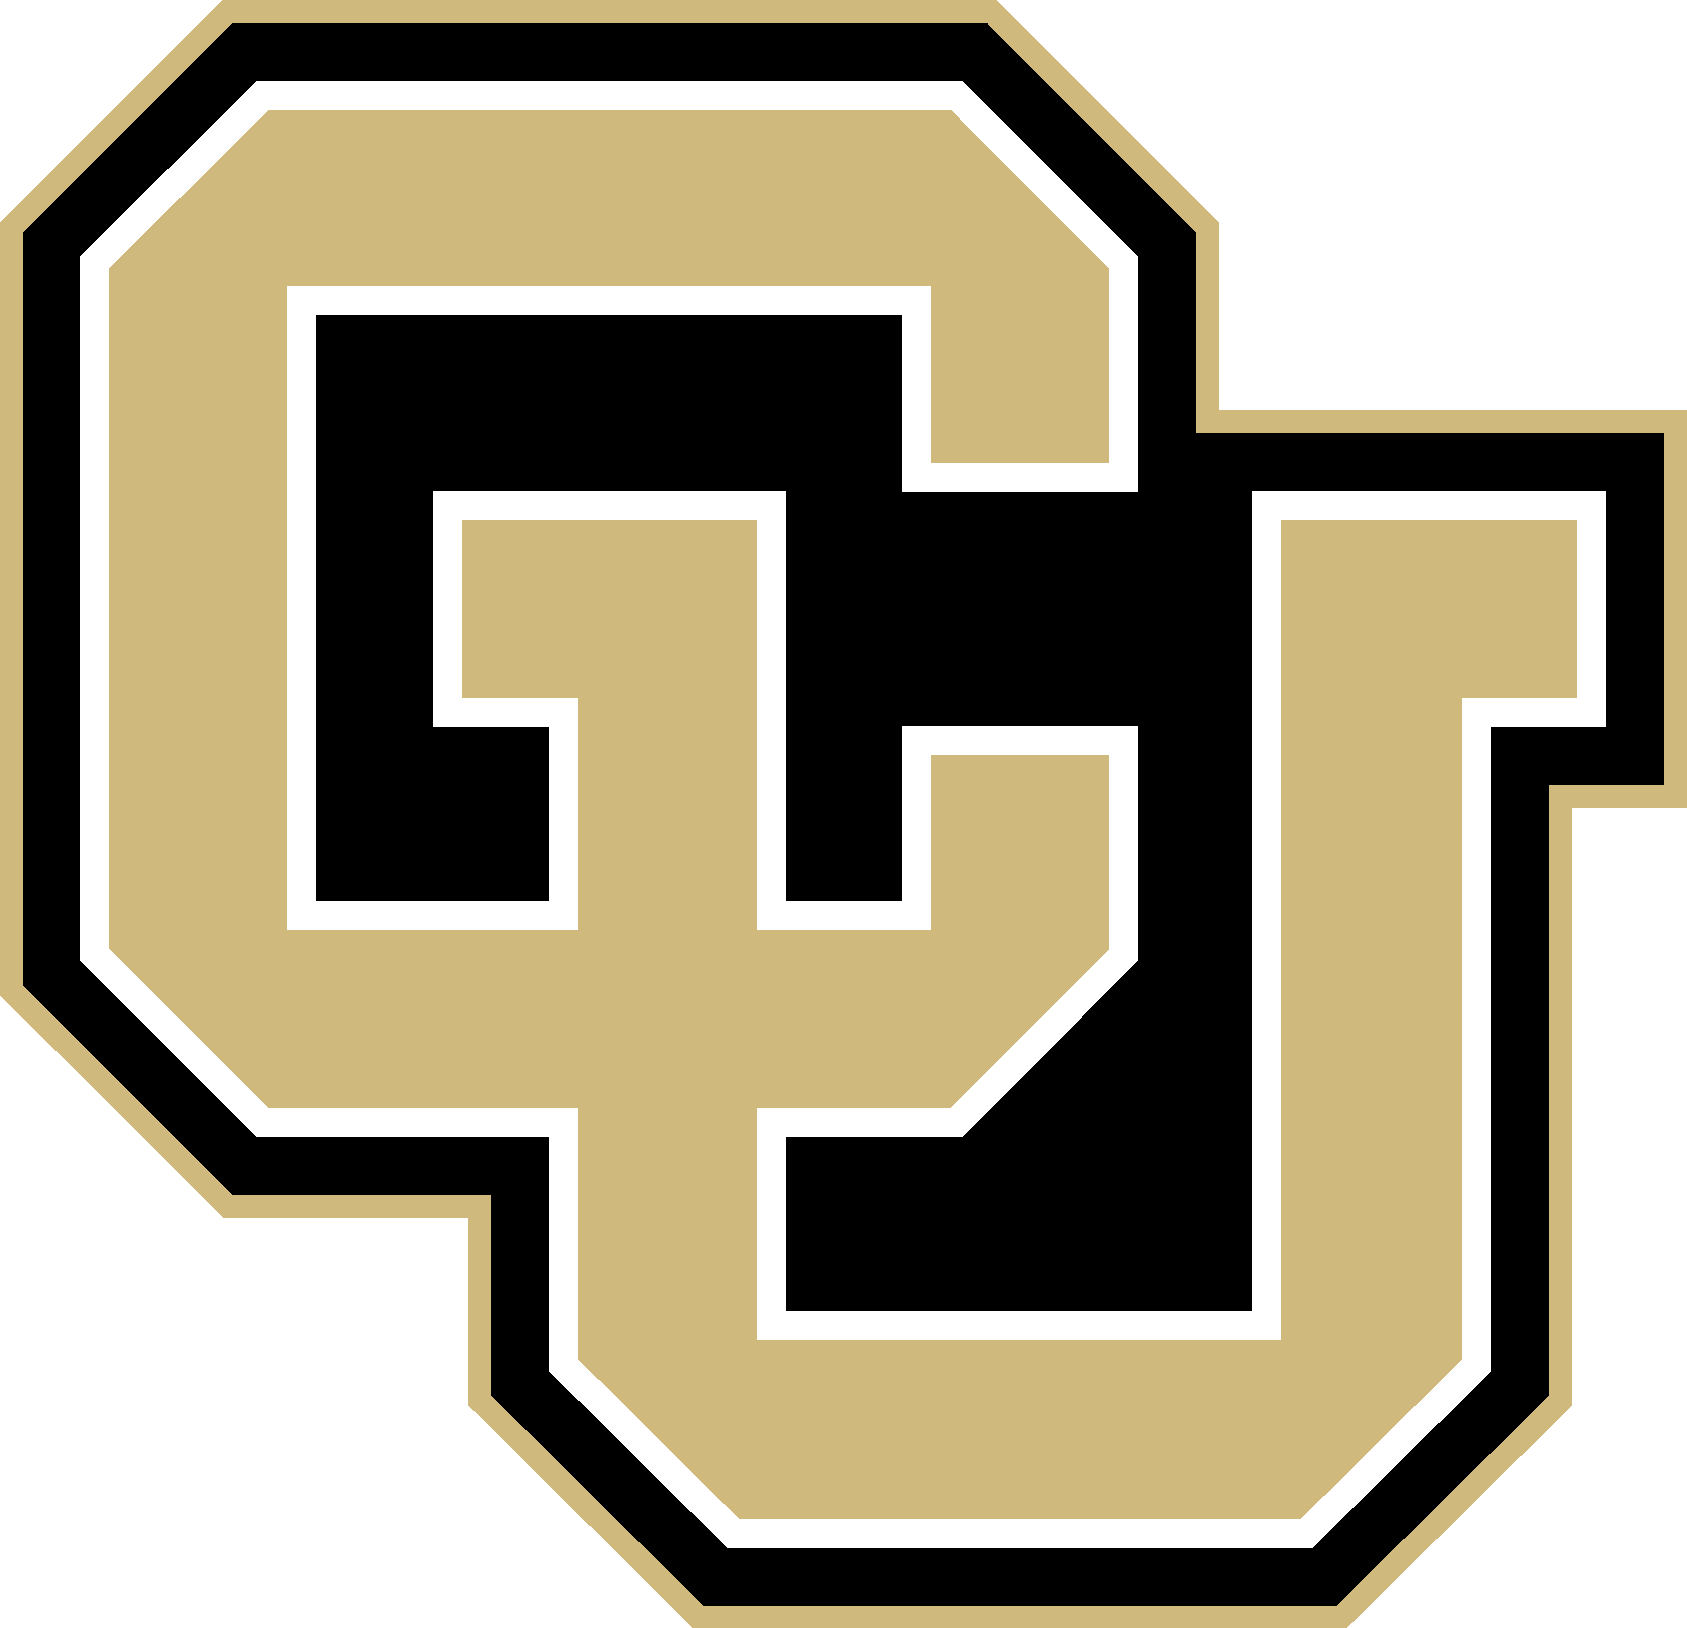 University of Colorado, Denver logo